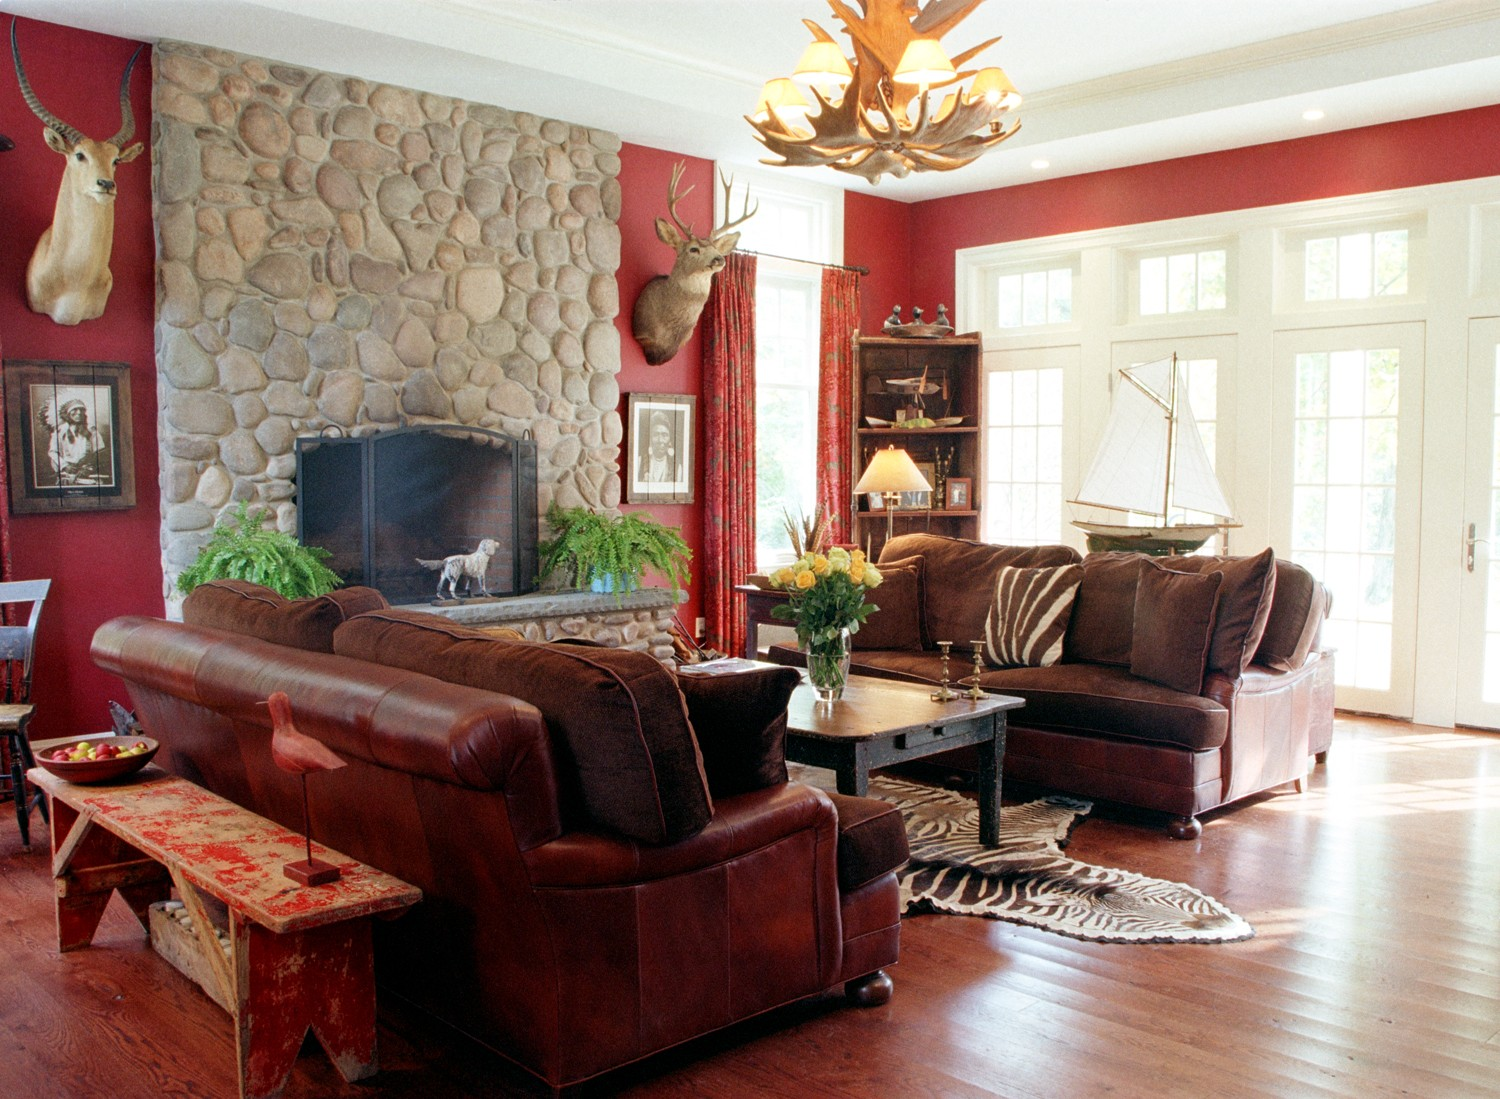 Drawing Room Decoration Ideas - Interior Decorating Las Vegas